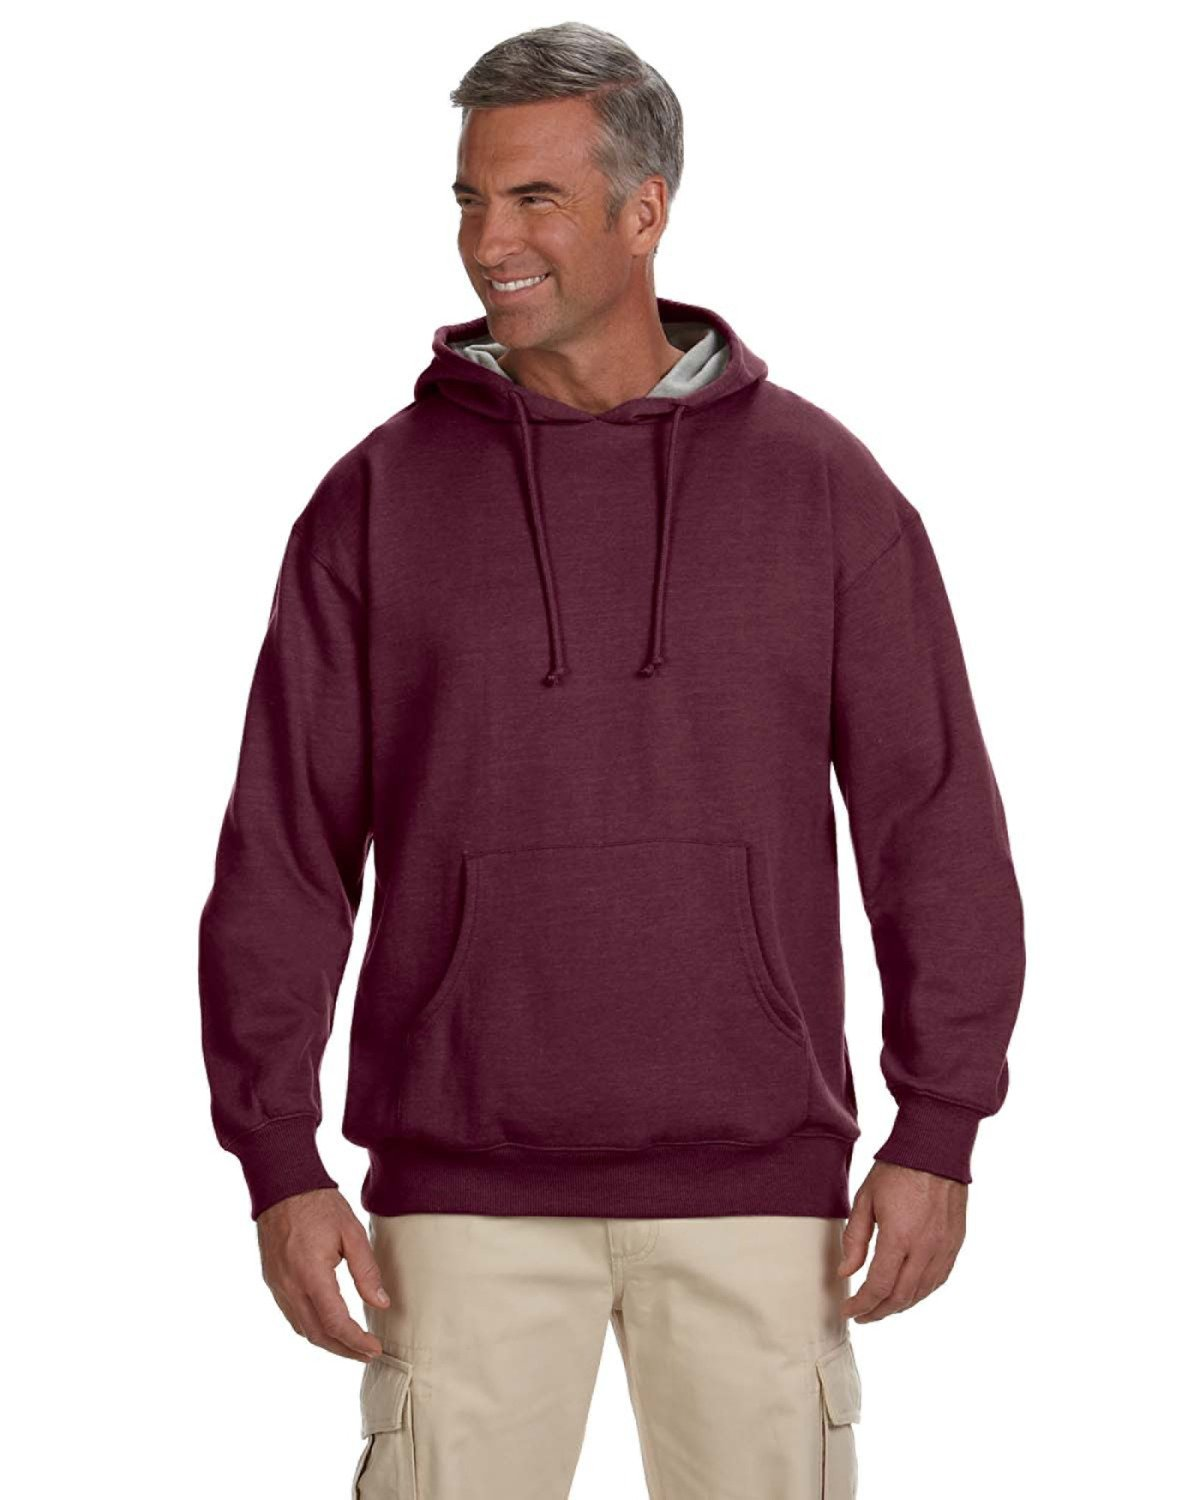 econscious Adult Organic/Recycled Heathered Fleece Pullover Hooded Sweatshirt BERRY